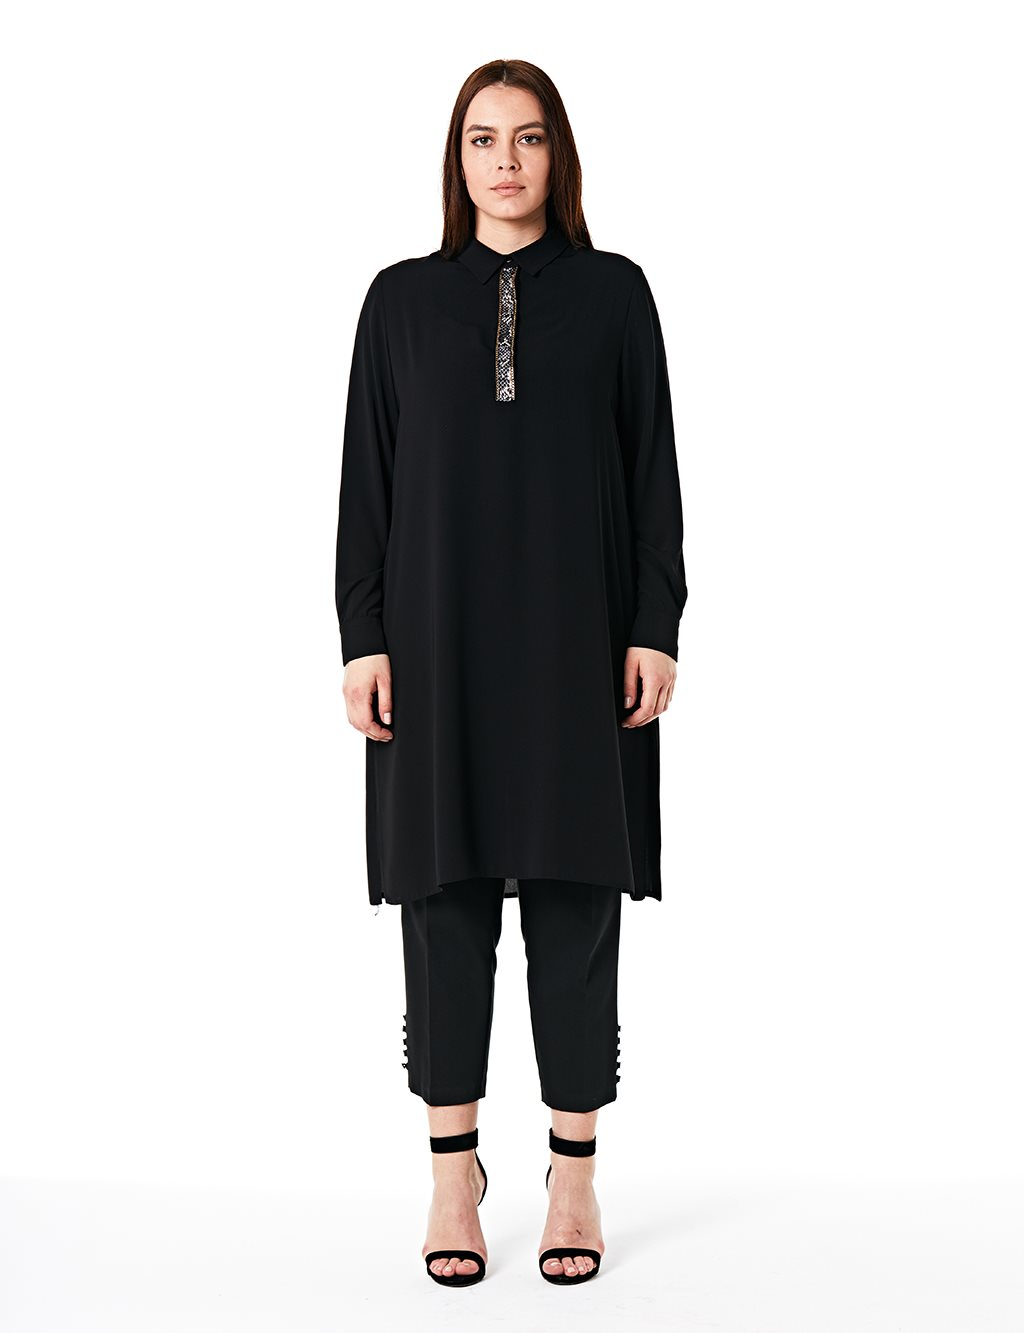 KYR Patterned Oversize Tunic Black B20 81325